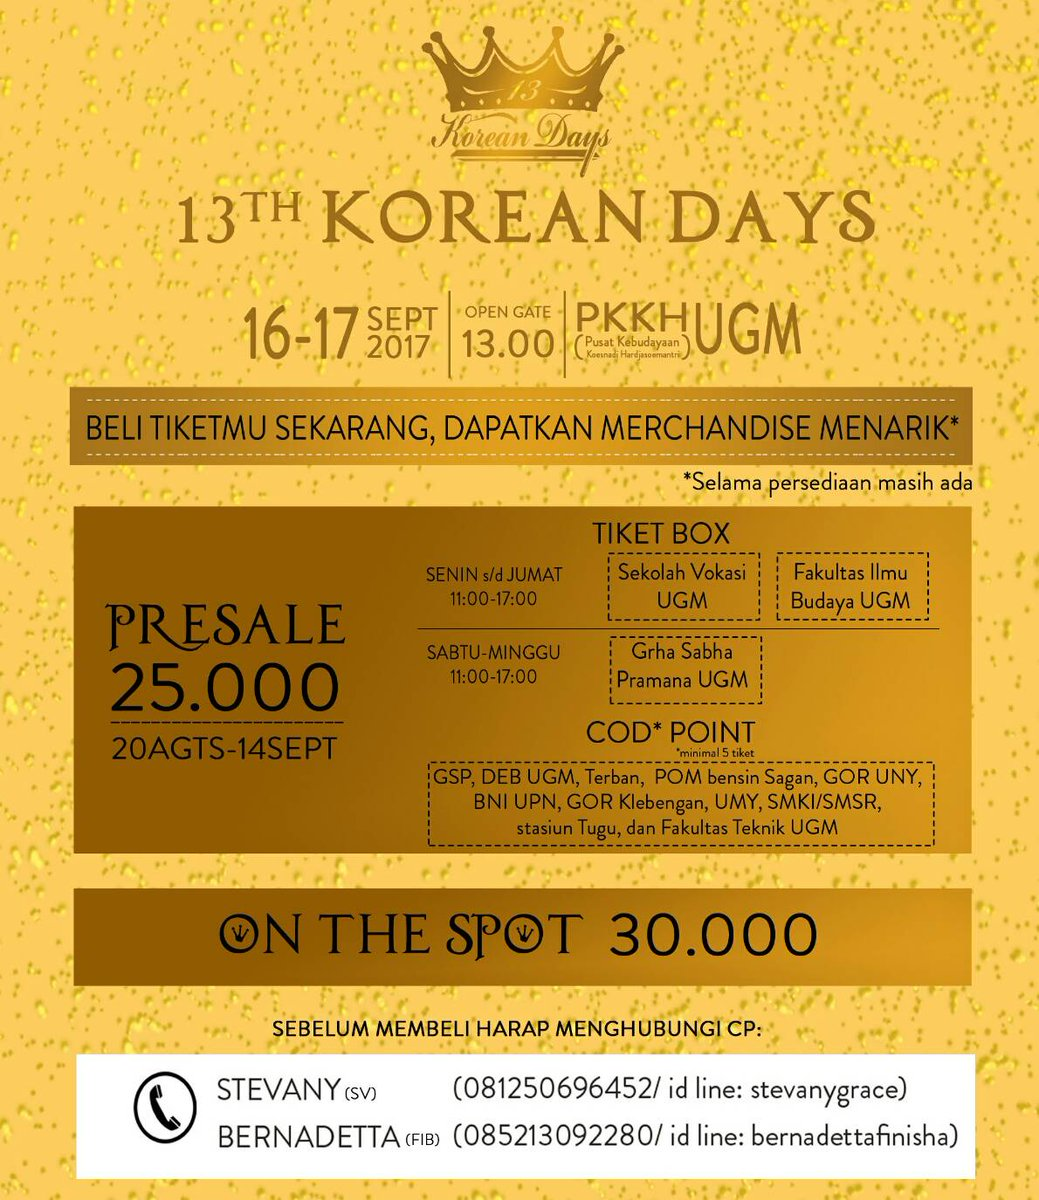 Korean Days UGM 2017 (saungkorea.com)